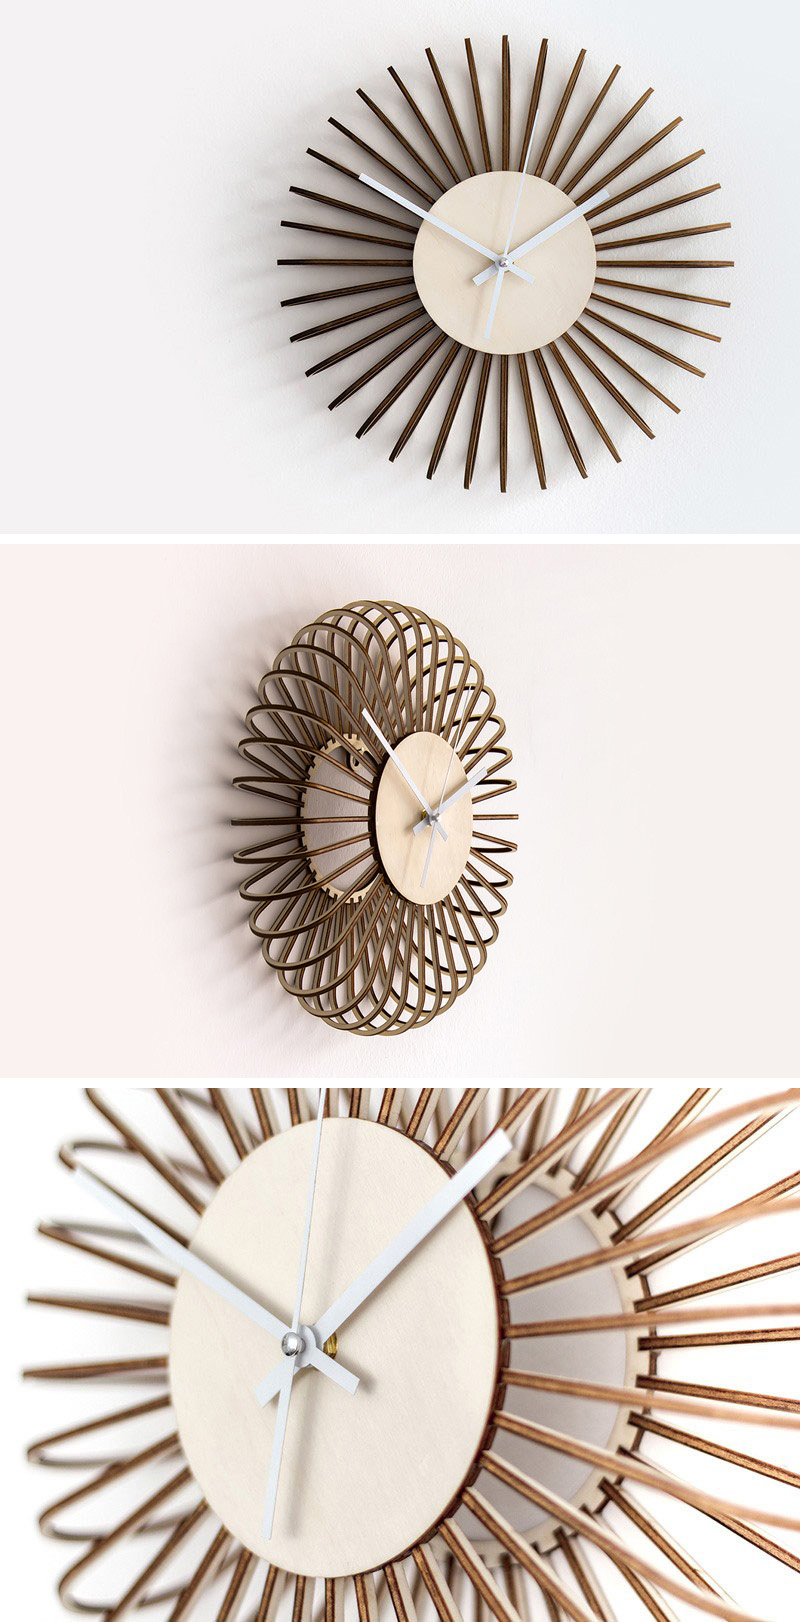 Individual pieces of wood make up these unique, modern wood wall clocks to create a smooth continuous look all the way around.